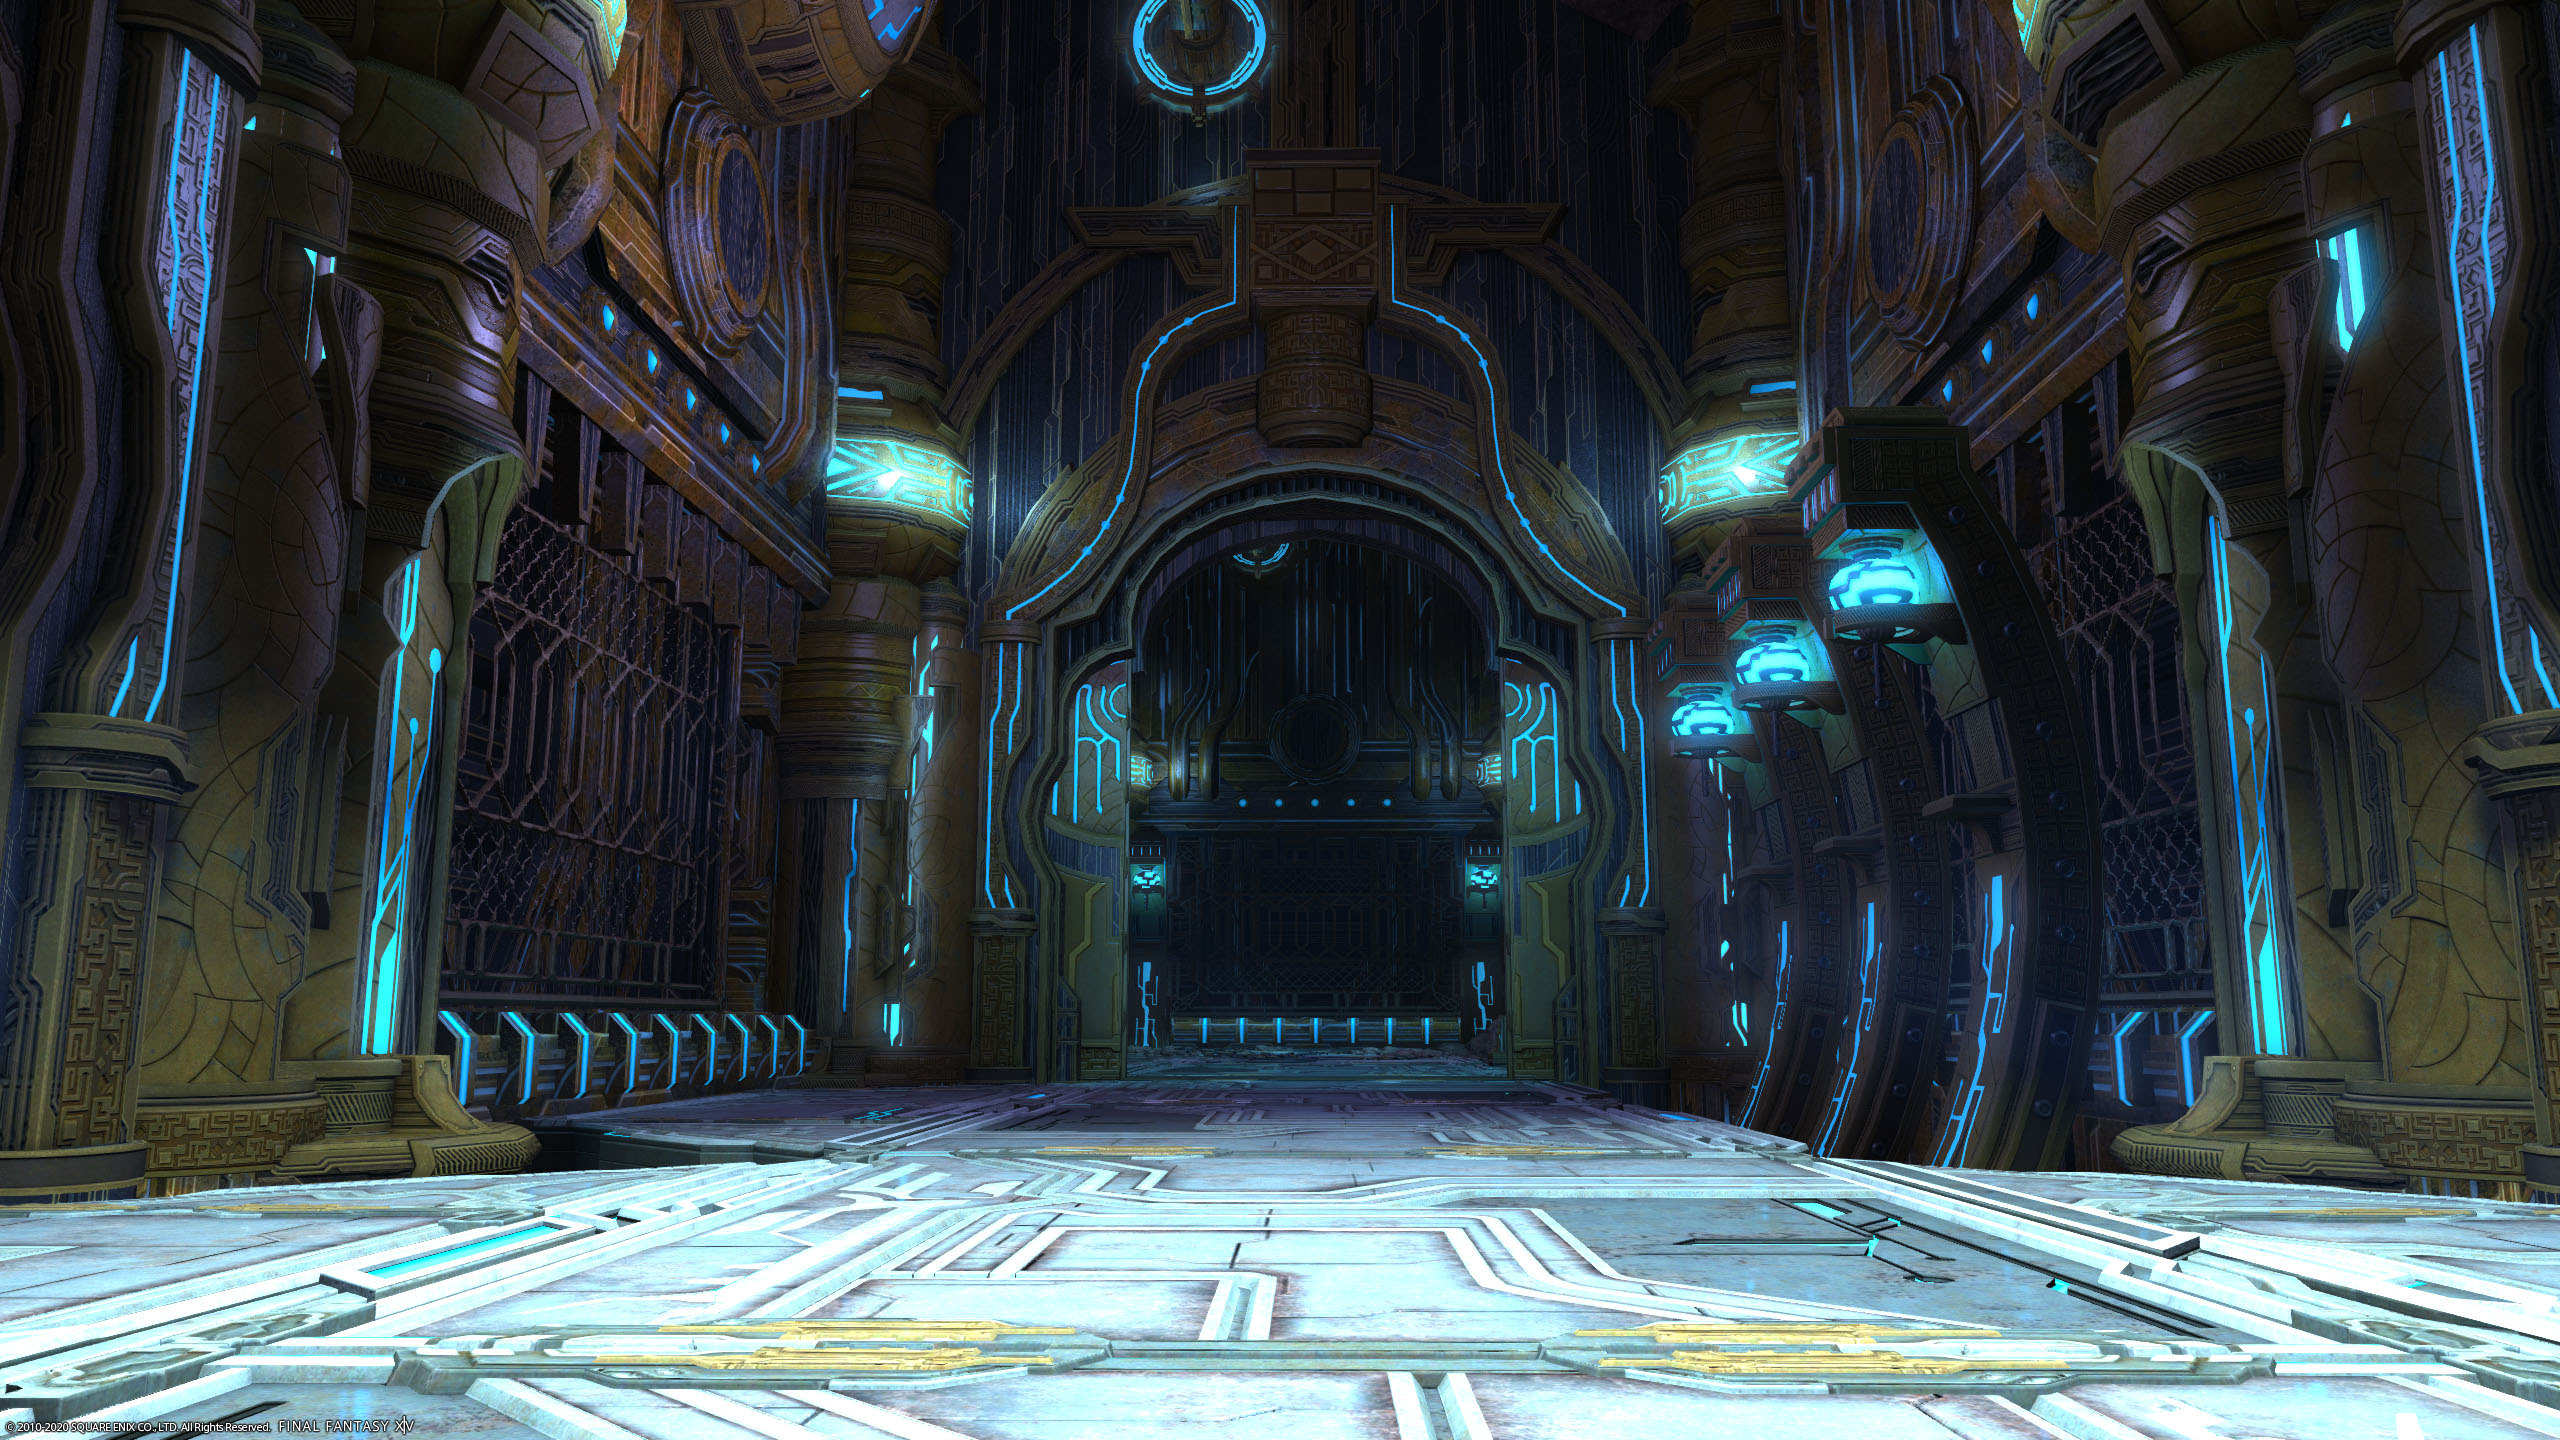 final fantasy xiv dungeon 5